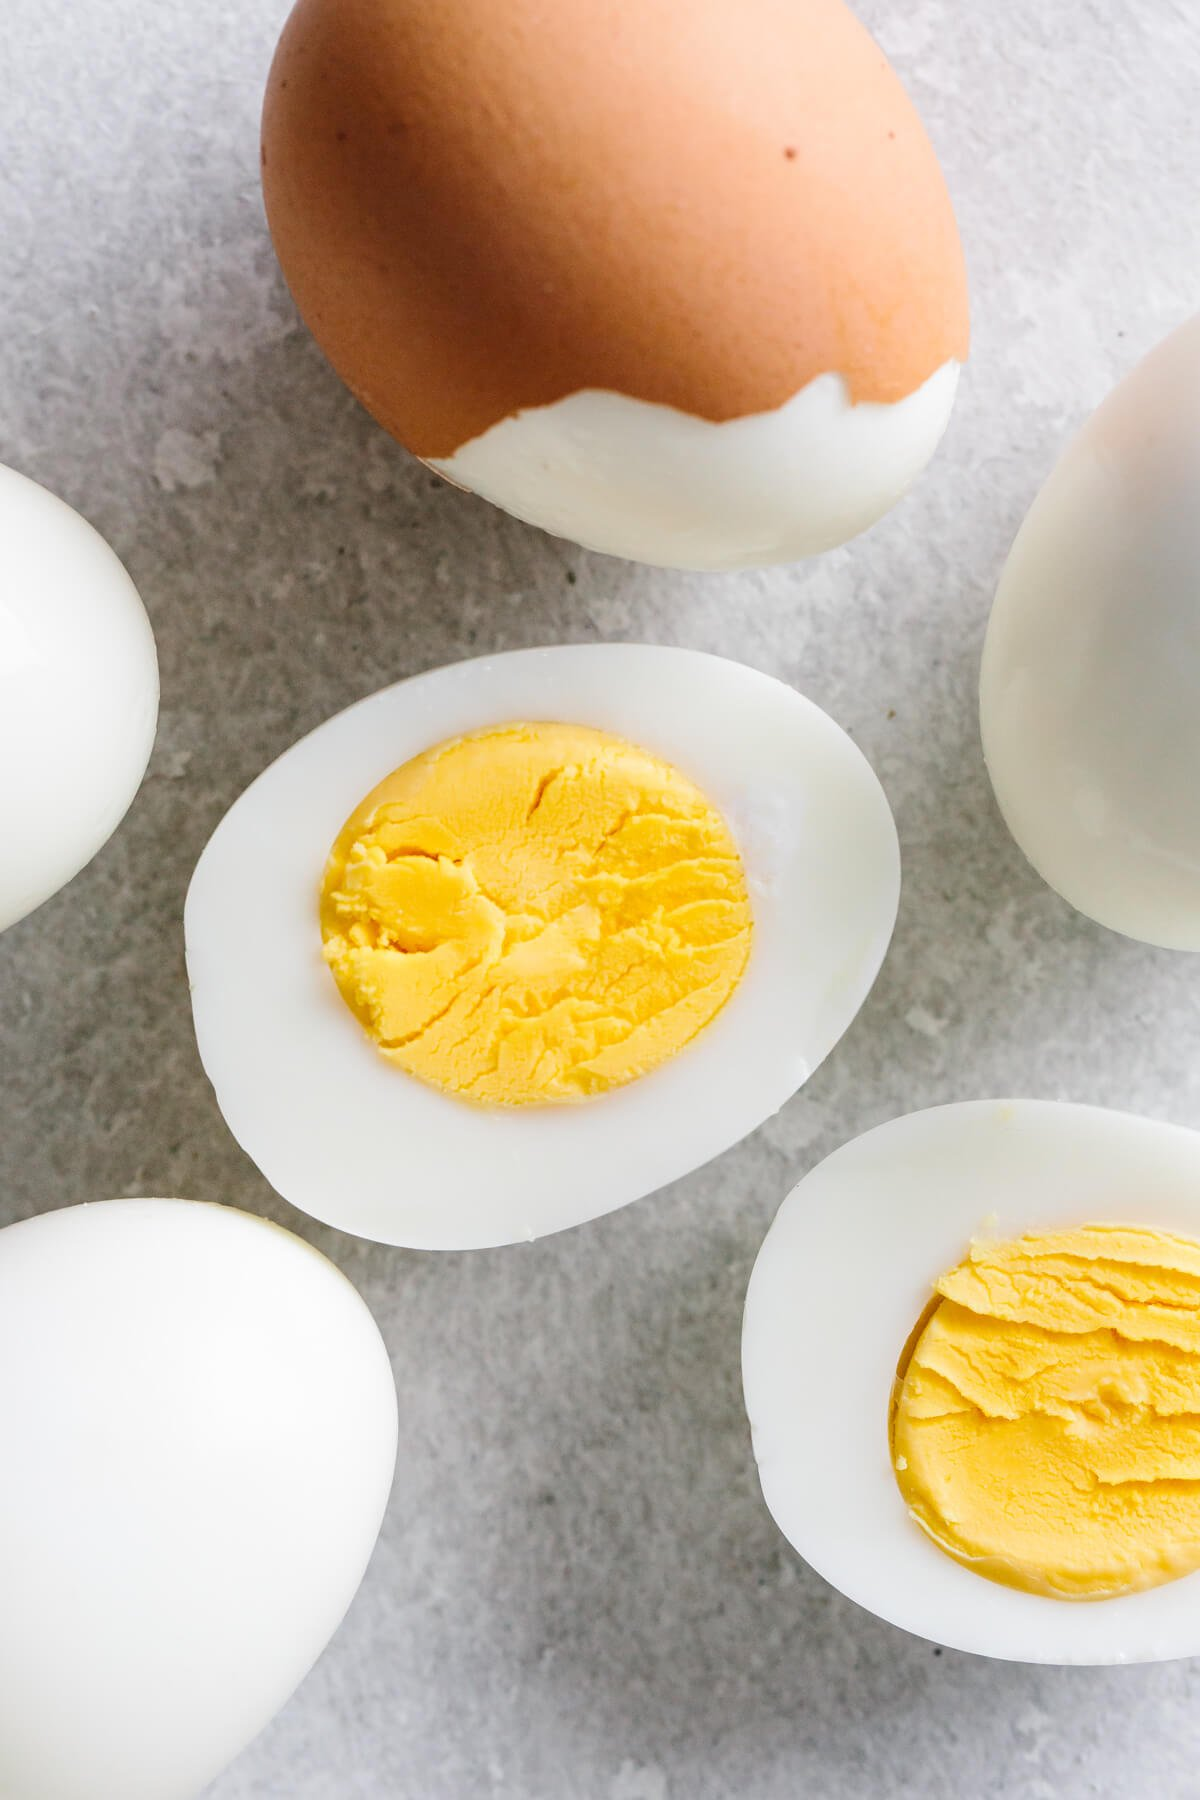 Hard boiled eggs on the counter.